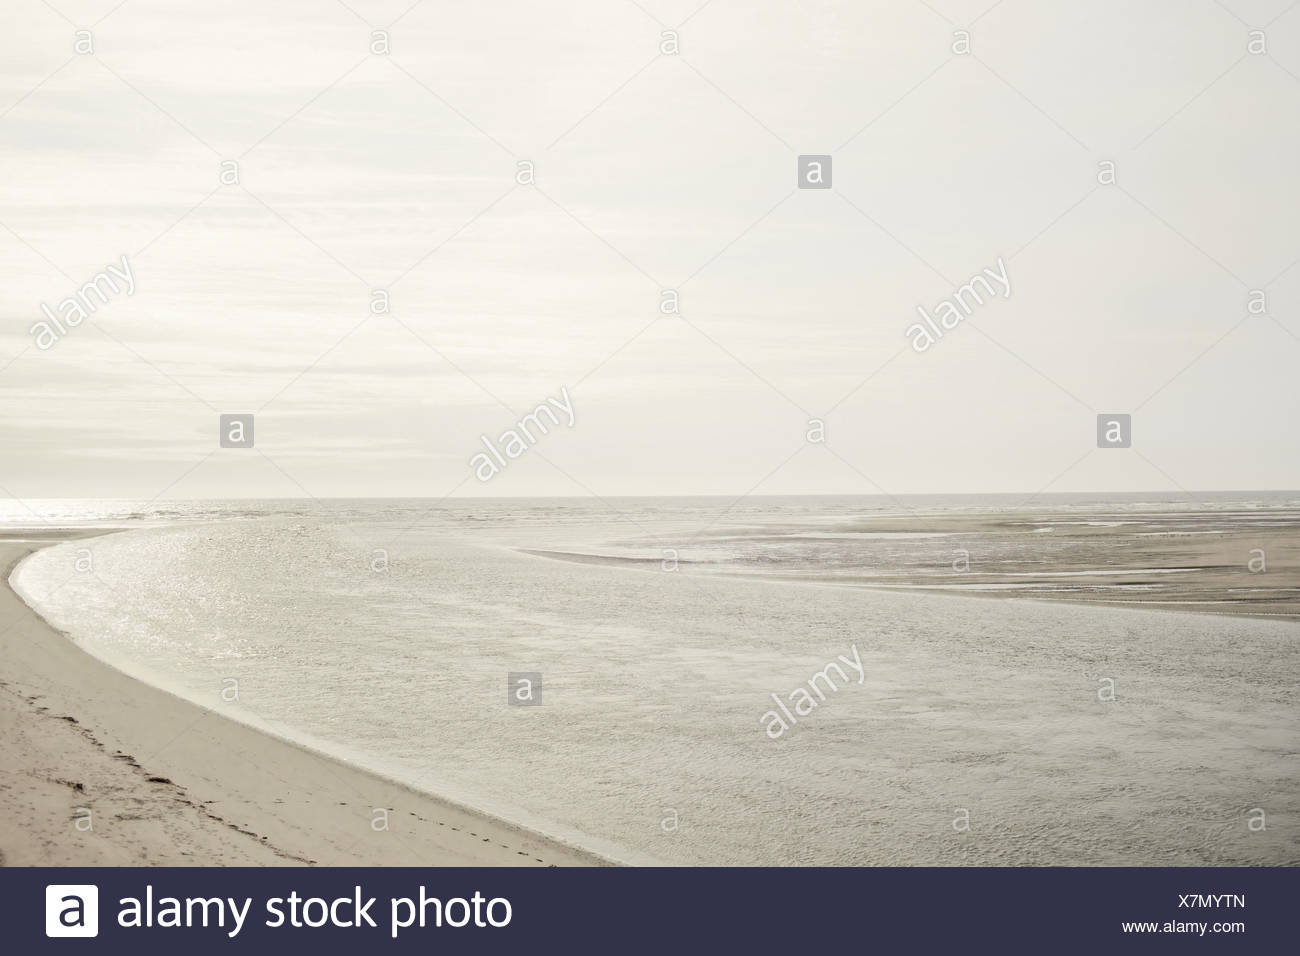 Beach scene with calm water Stock Photo